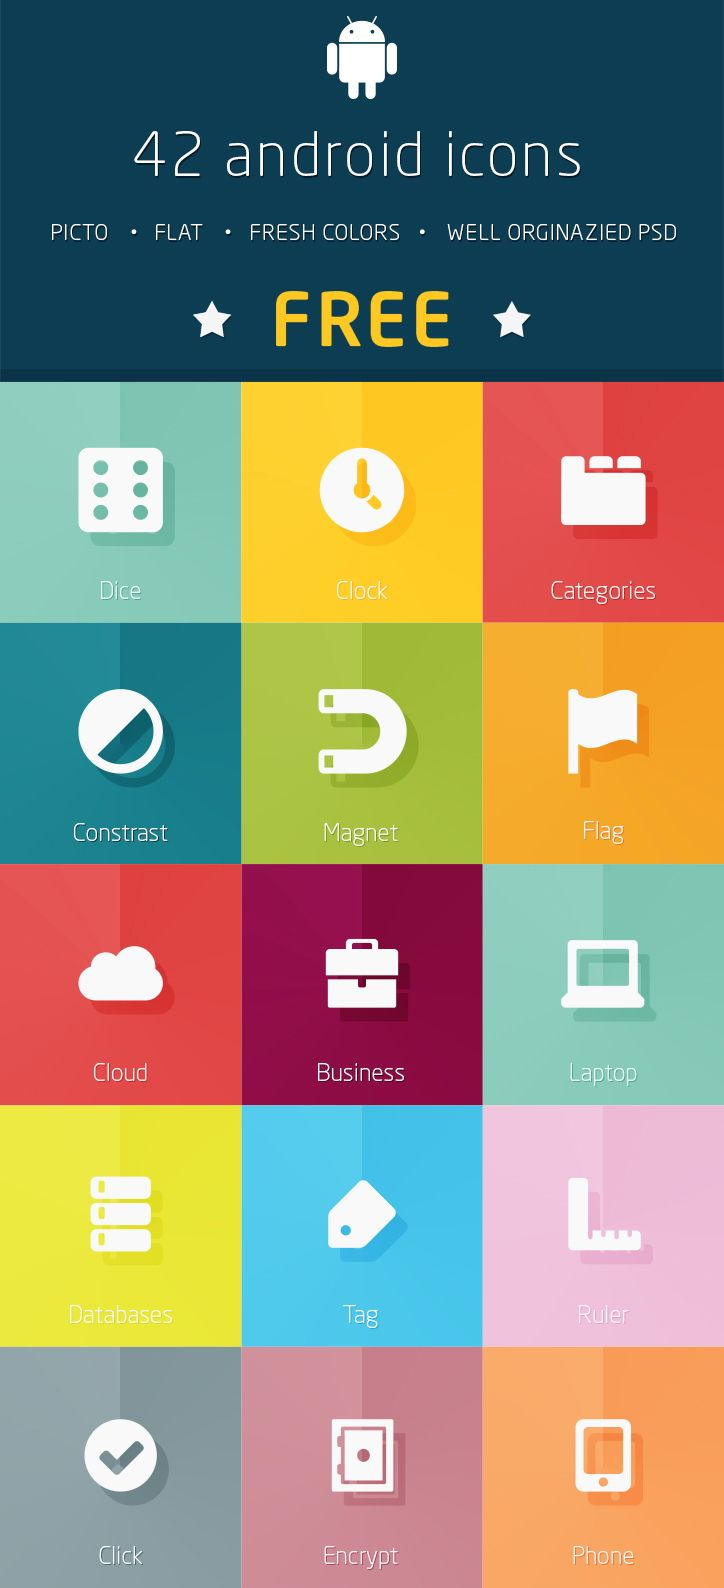 Icon set for Android